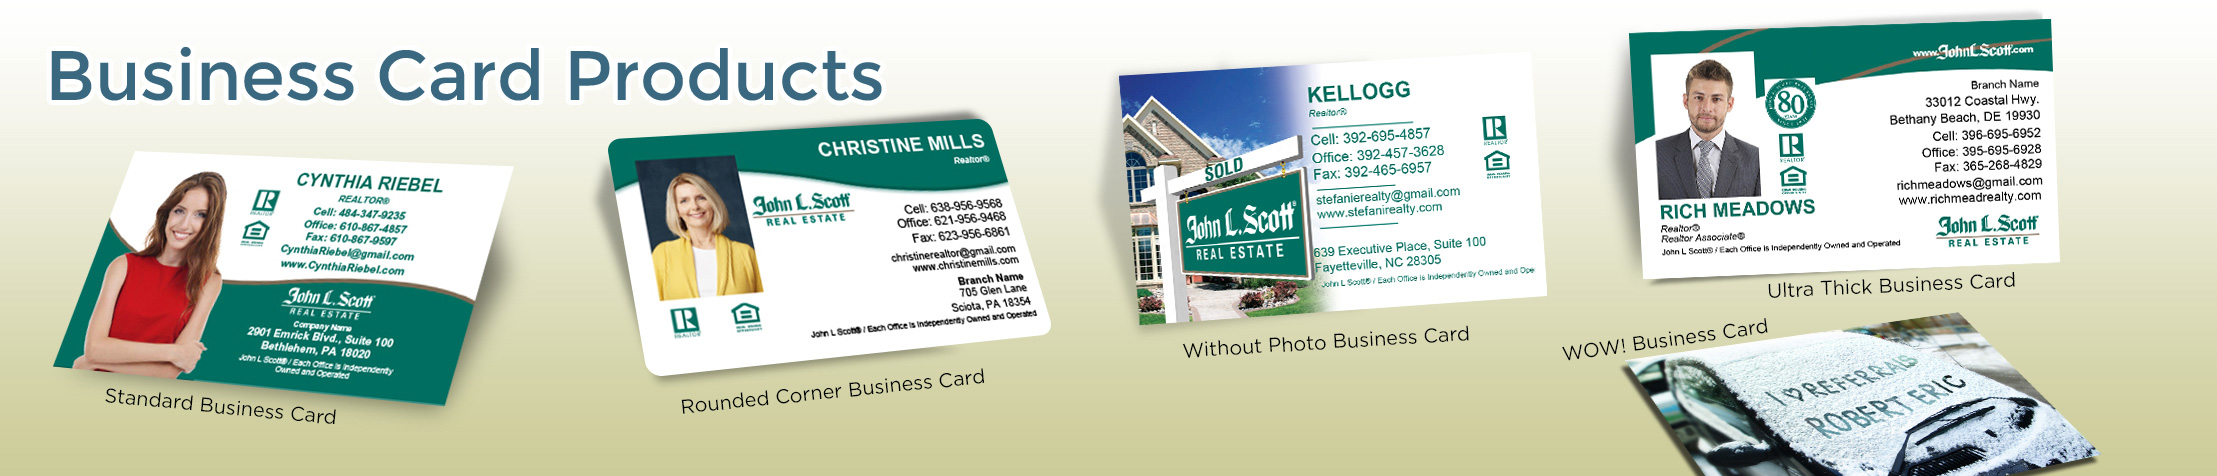 John L. Scott Real Estate Business Card Products - John L. Scott Real Estate - Unique, Custom Business Cards Printed on Quality Stock with Creative Designs for Realtors | BestPrintBuy.com